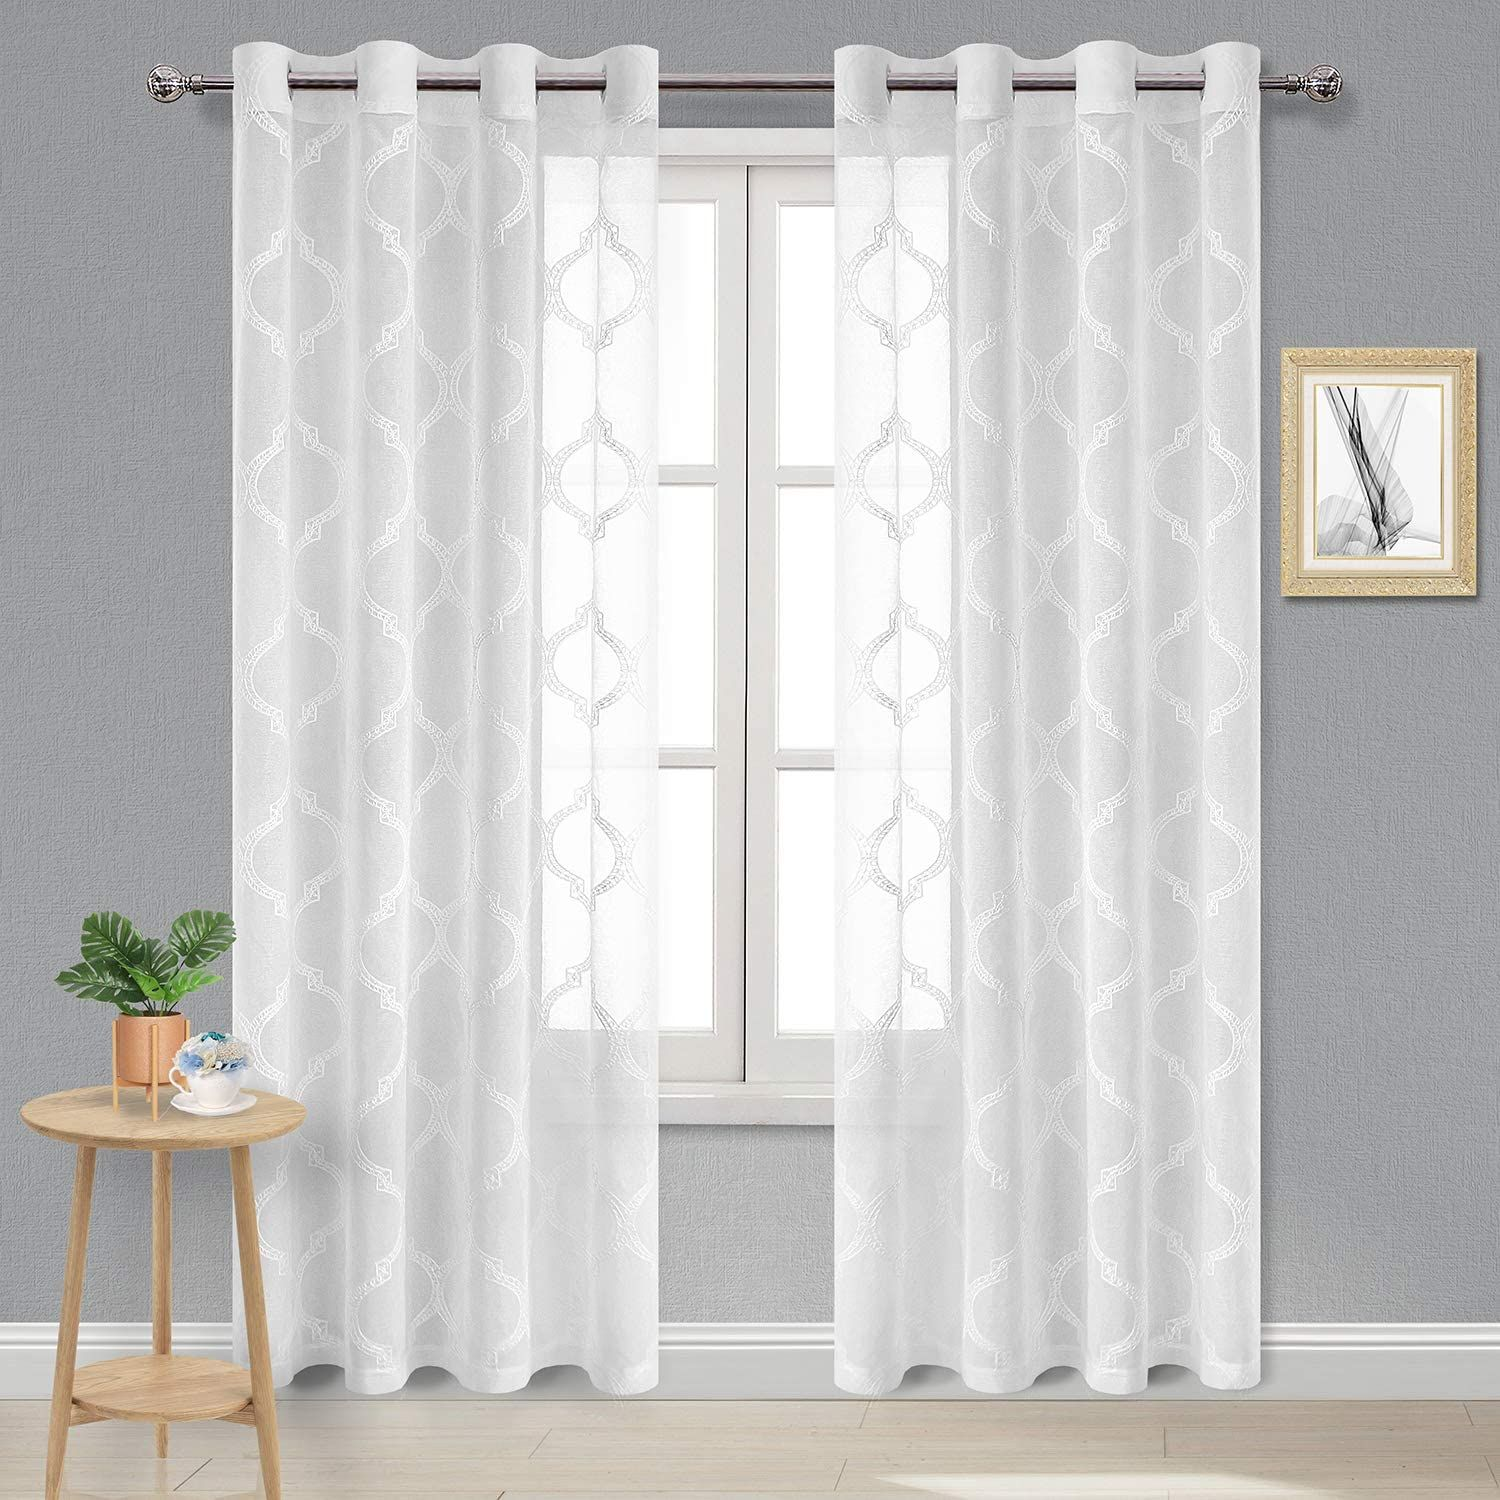 Amazon Com Dwcn Sheer Curtains Moroccan Tile Embroidered